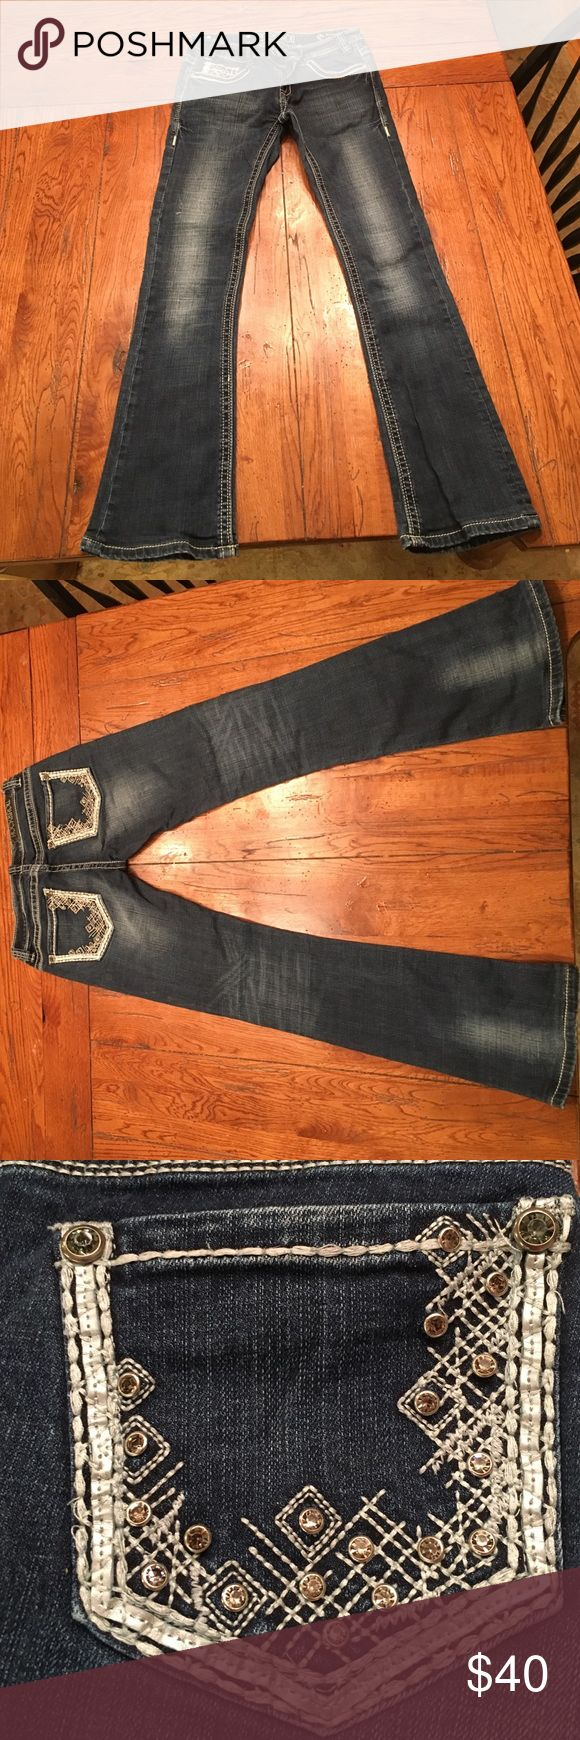 Rock and Roll Cowgirl boot cut jeans Cute Rock and Roll boot cut jeans with sequences and gems on the pockets Rock & Roll Cowgirl Jeans Boot Cut